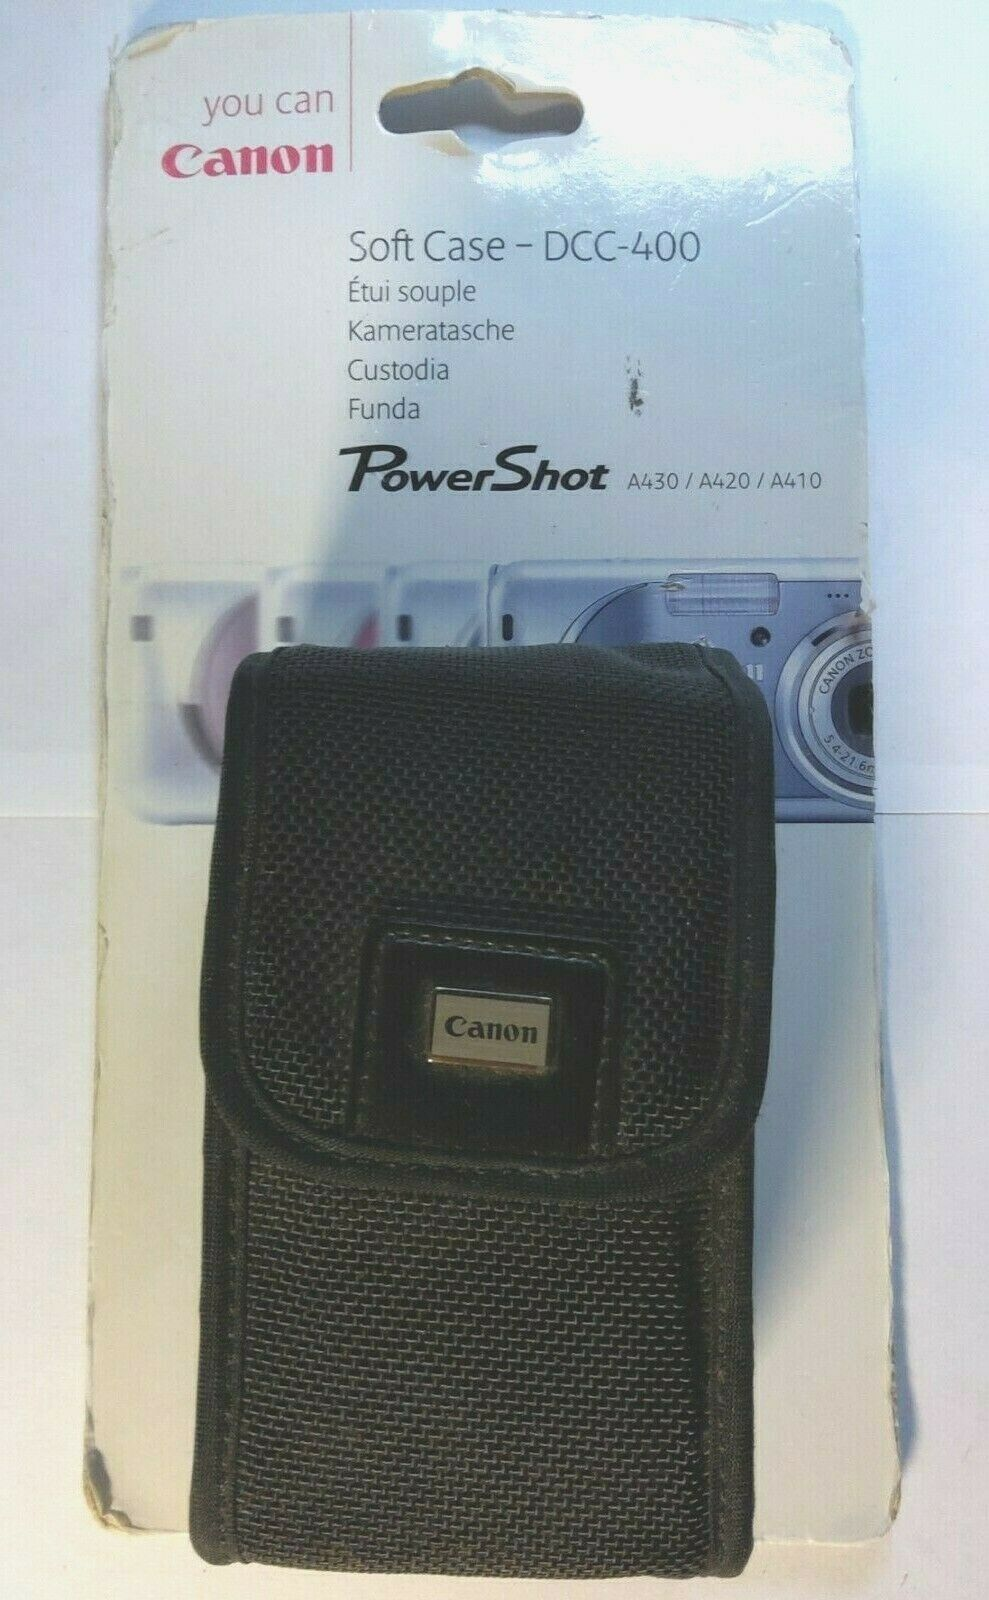 Cannon Soft Case DCC-400 for PowerShot A430 / A420 / A410 Will fit other brands